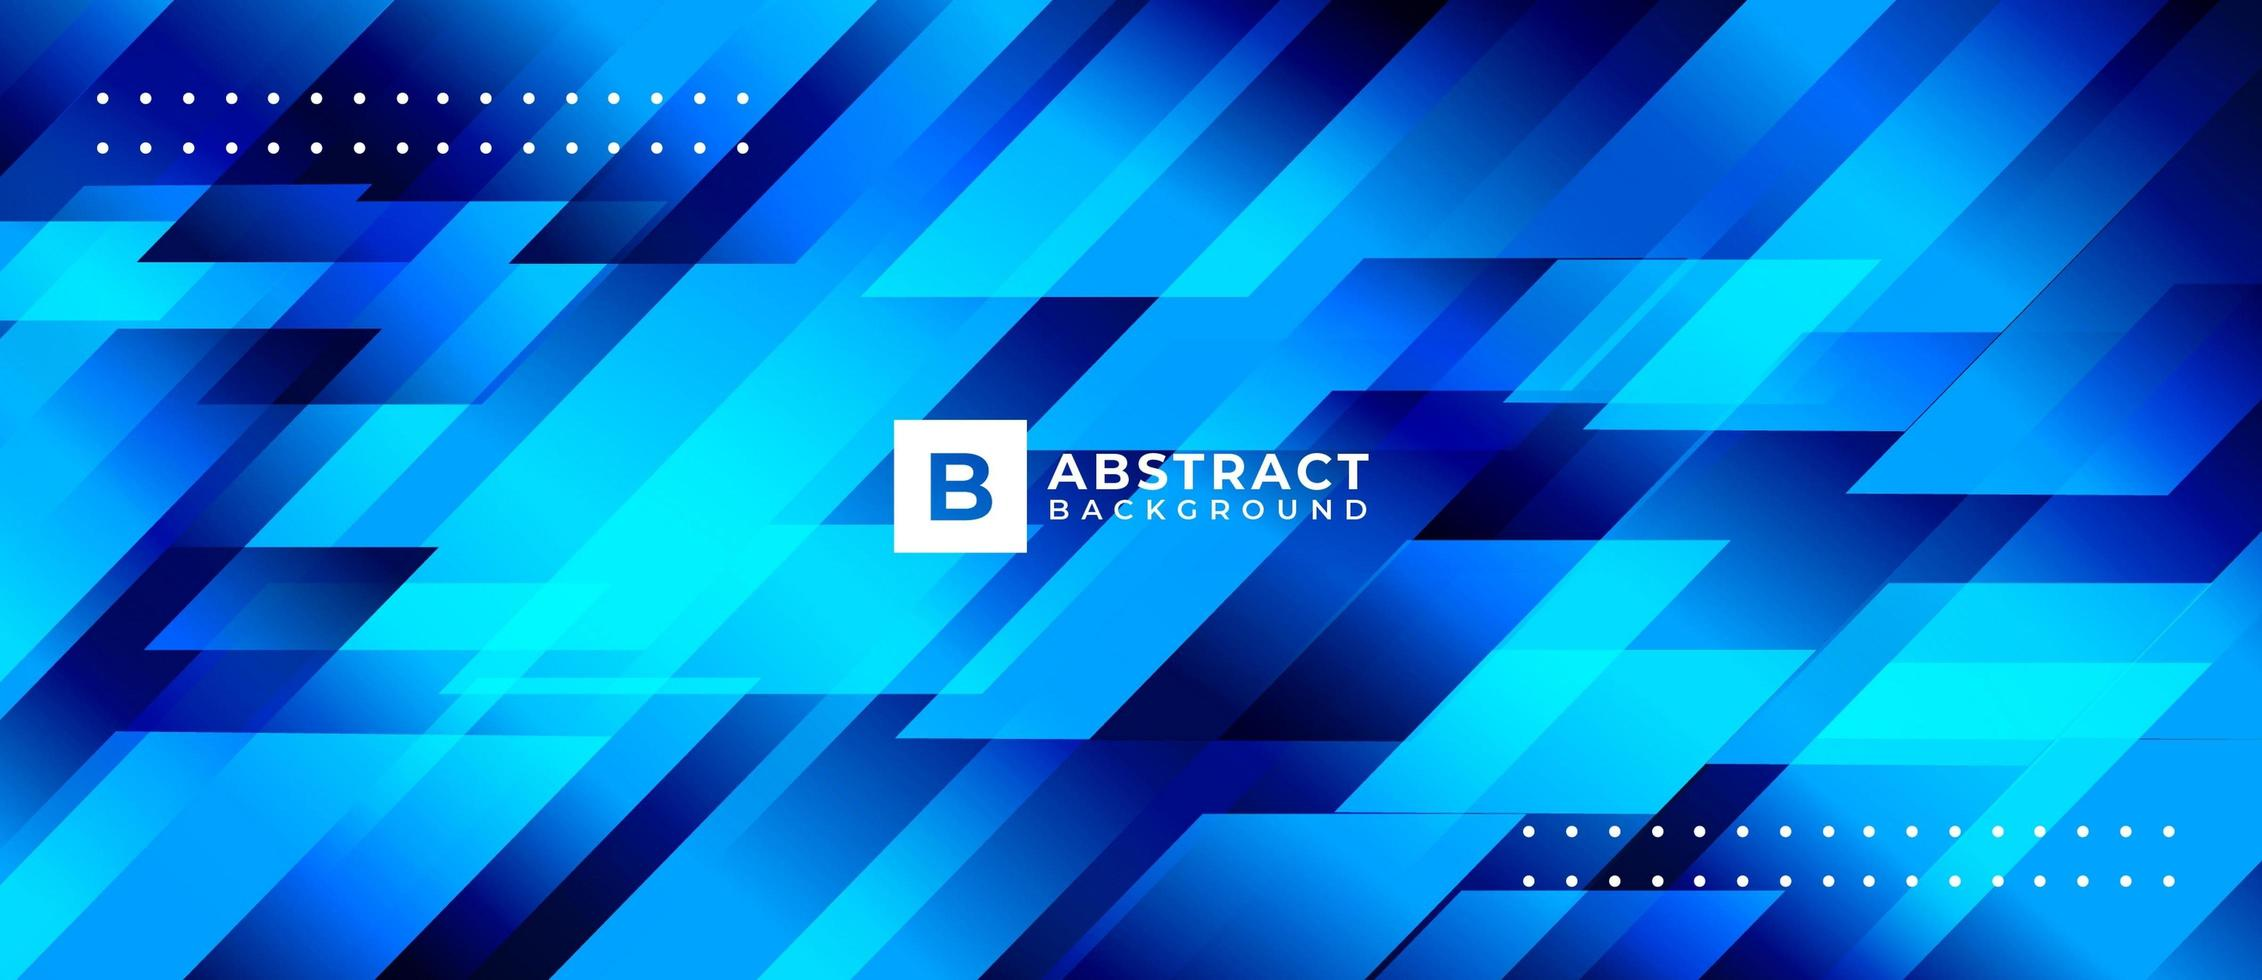 Blue Geometric Shape Abstract Background vector